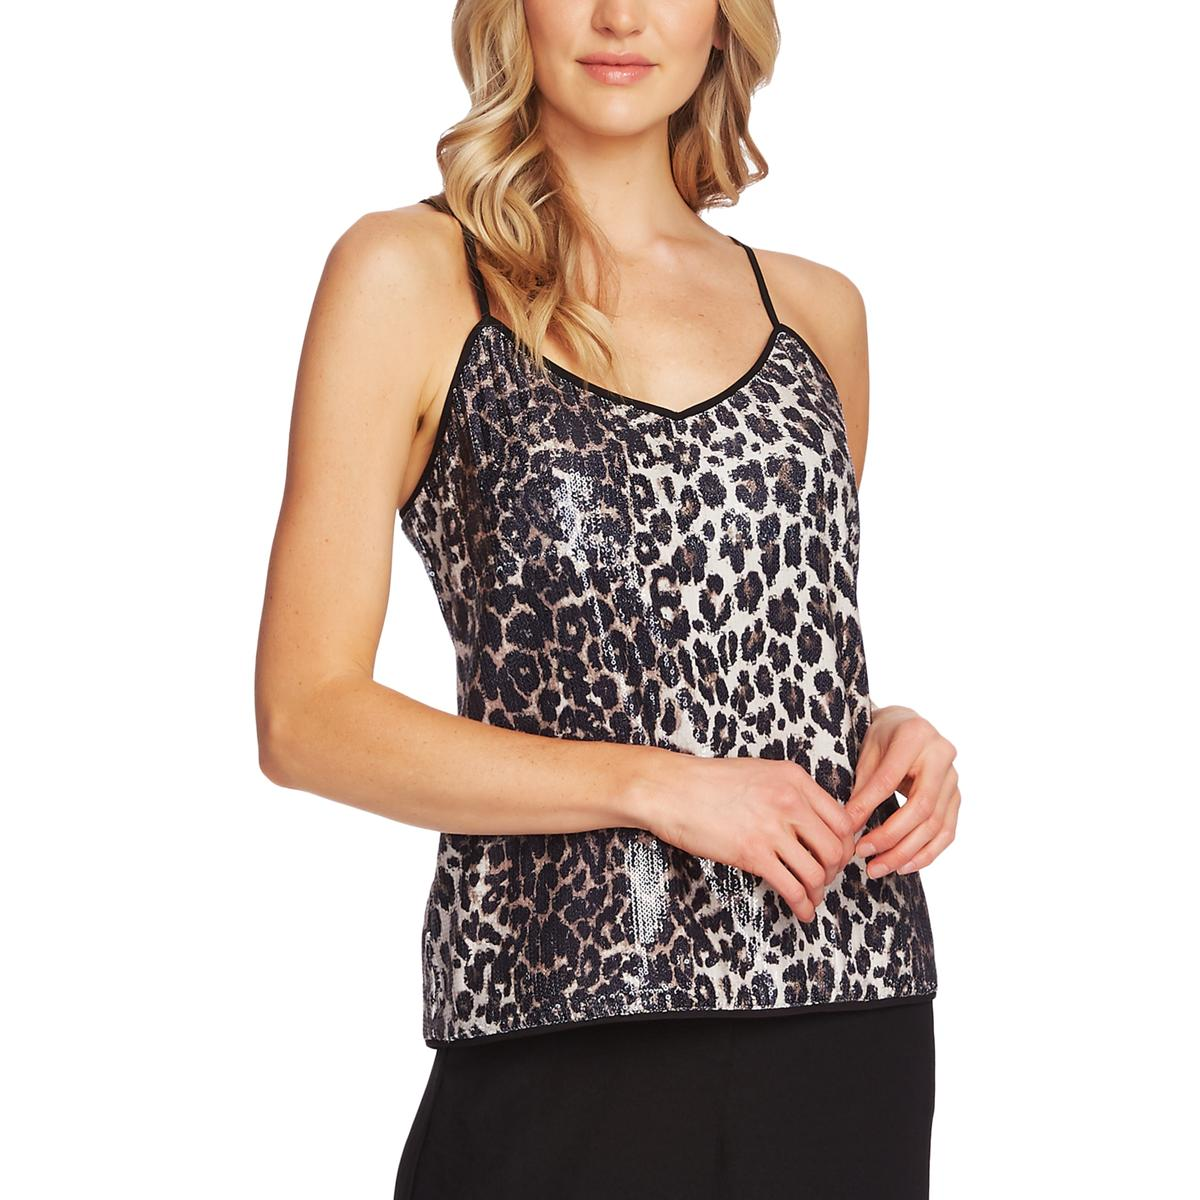 Vince Camuto Womens Animal Print Sequined V-Neck Tank Top Shell BHFO 8203